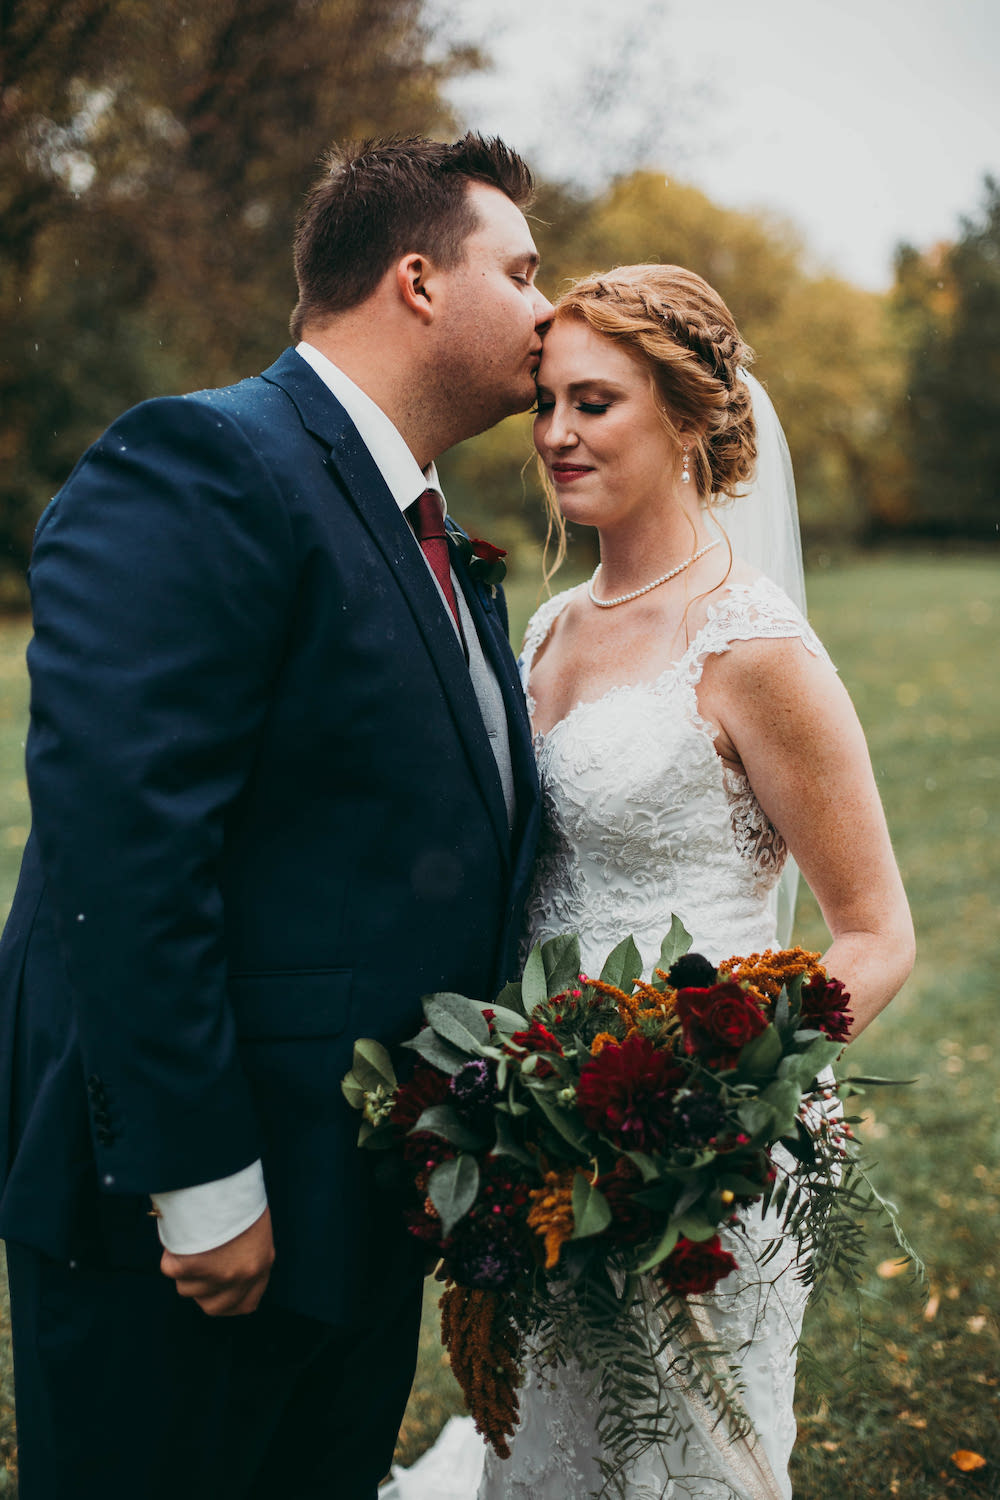 Fall Weddings in Winnipeg - Stone House Creative